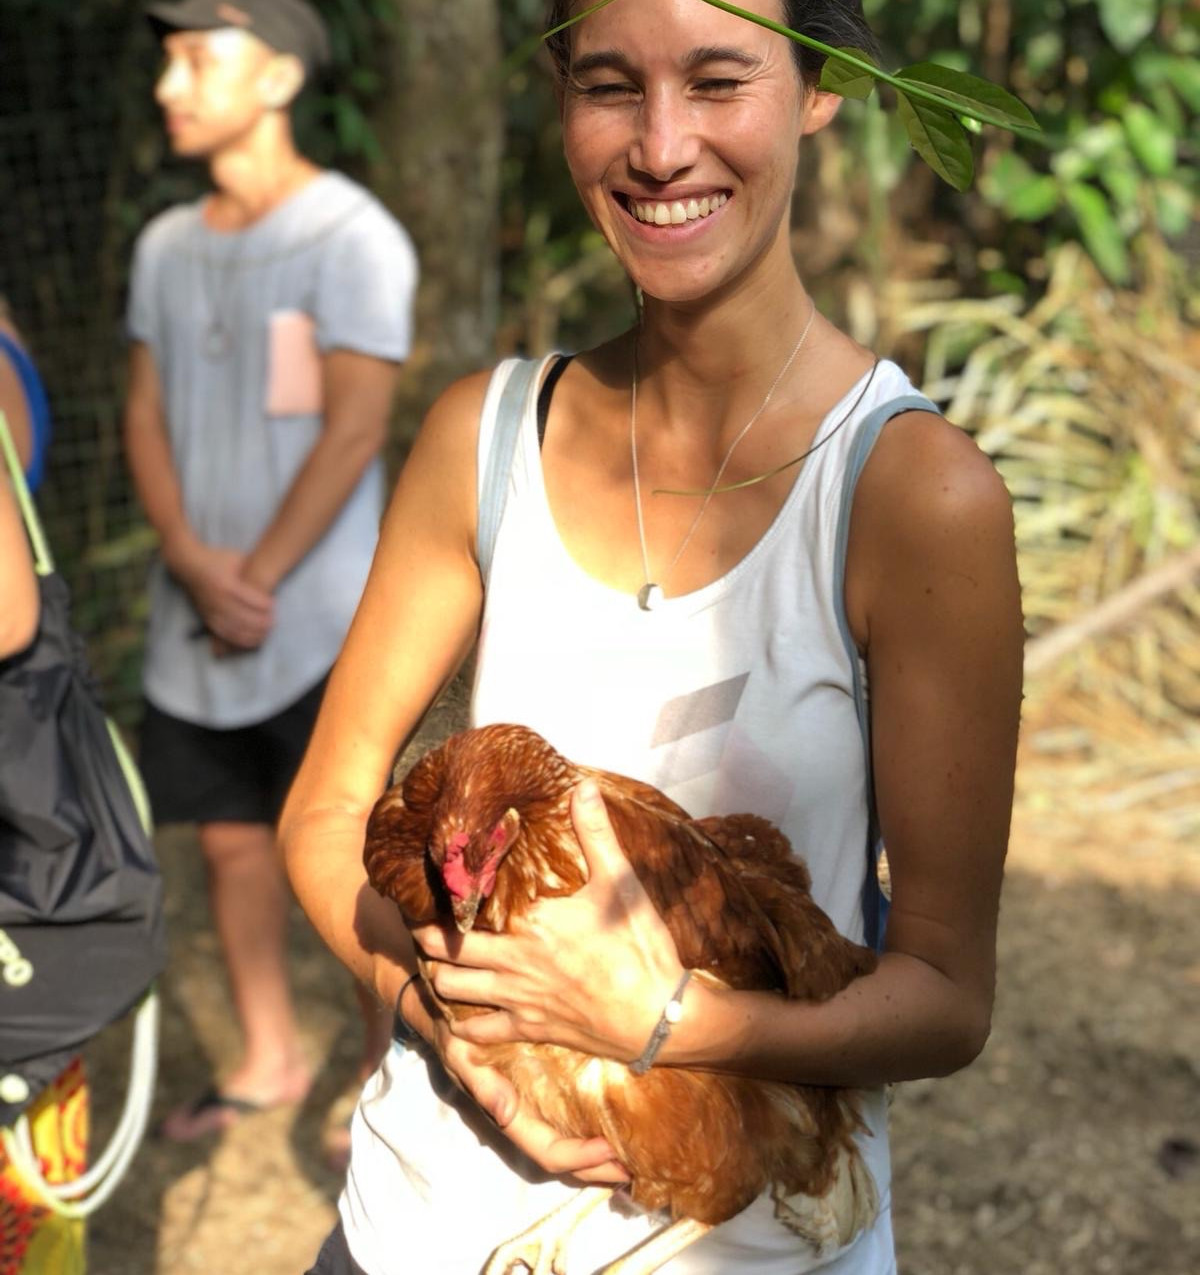 Animals are a big part of permaculture. They take over where often chemicals are used. Like for fertilization (manure) or pest control (chicken love insects).